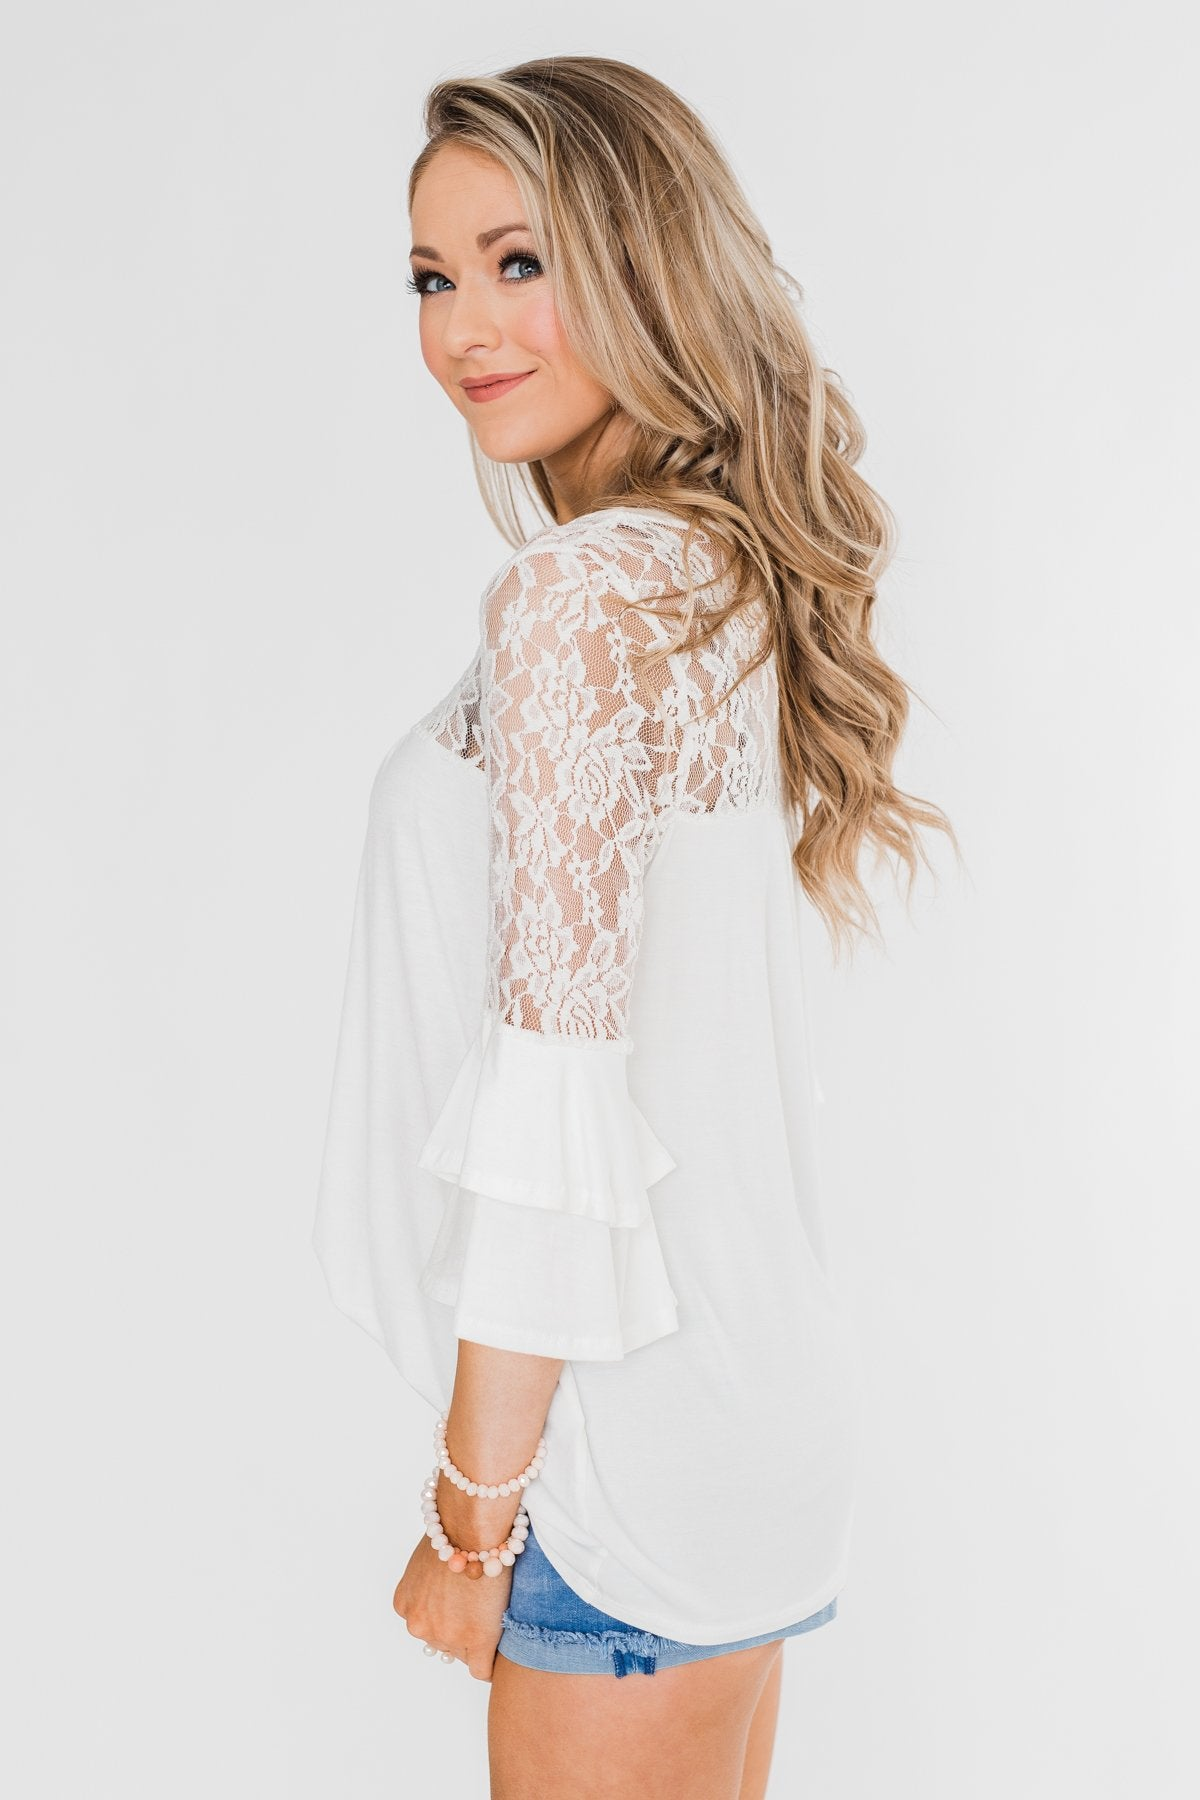 Right Beside Me Lace & Ruffles Top- Ivory